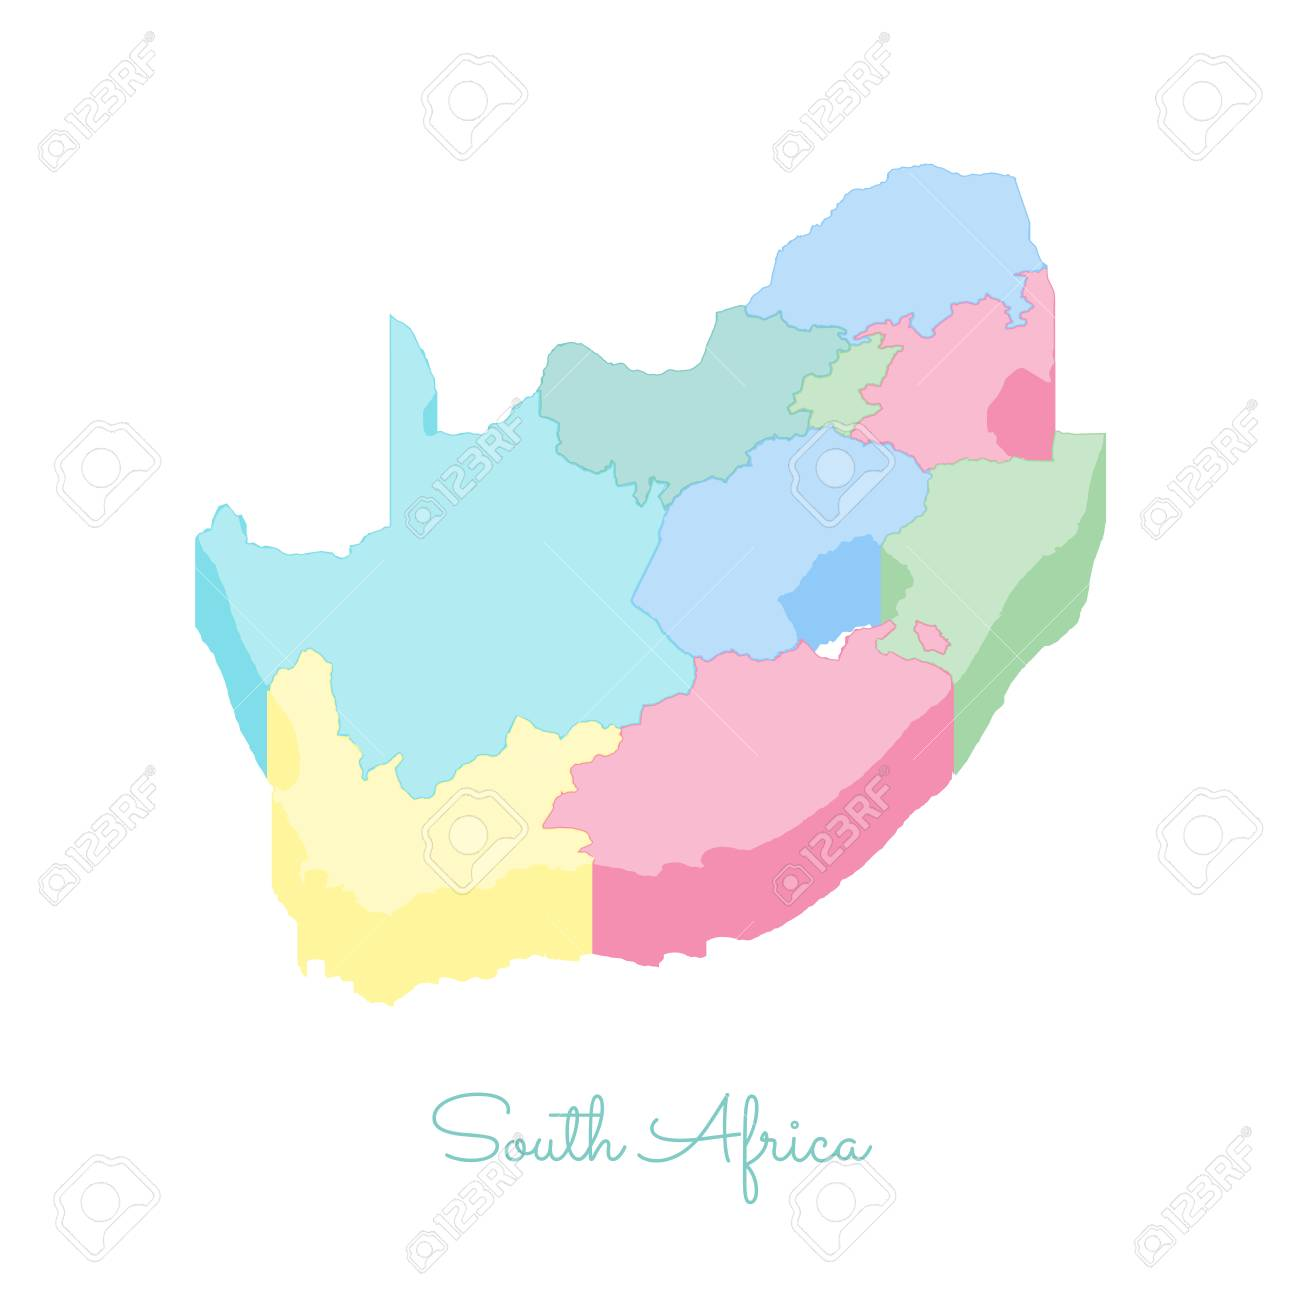 Map Of Africa Regions.South Africa Region Map Colorful Isometric Top View Detailed